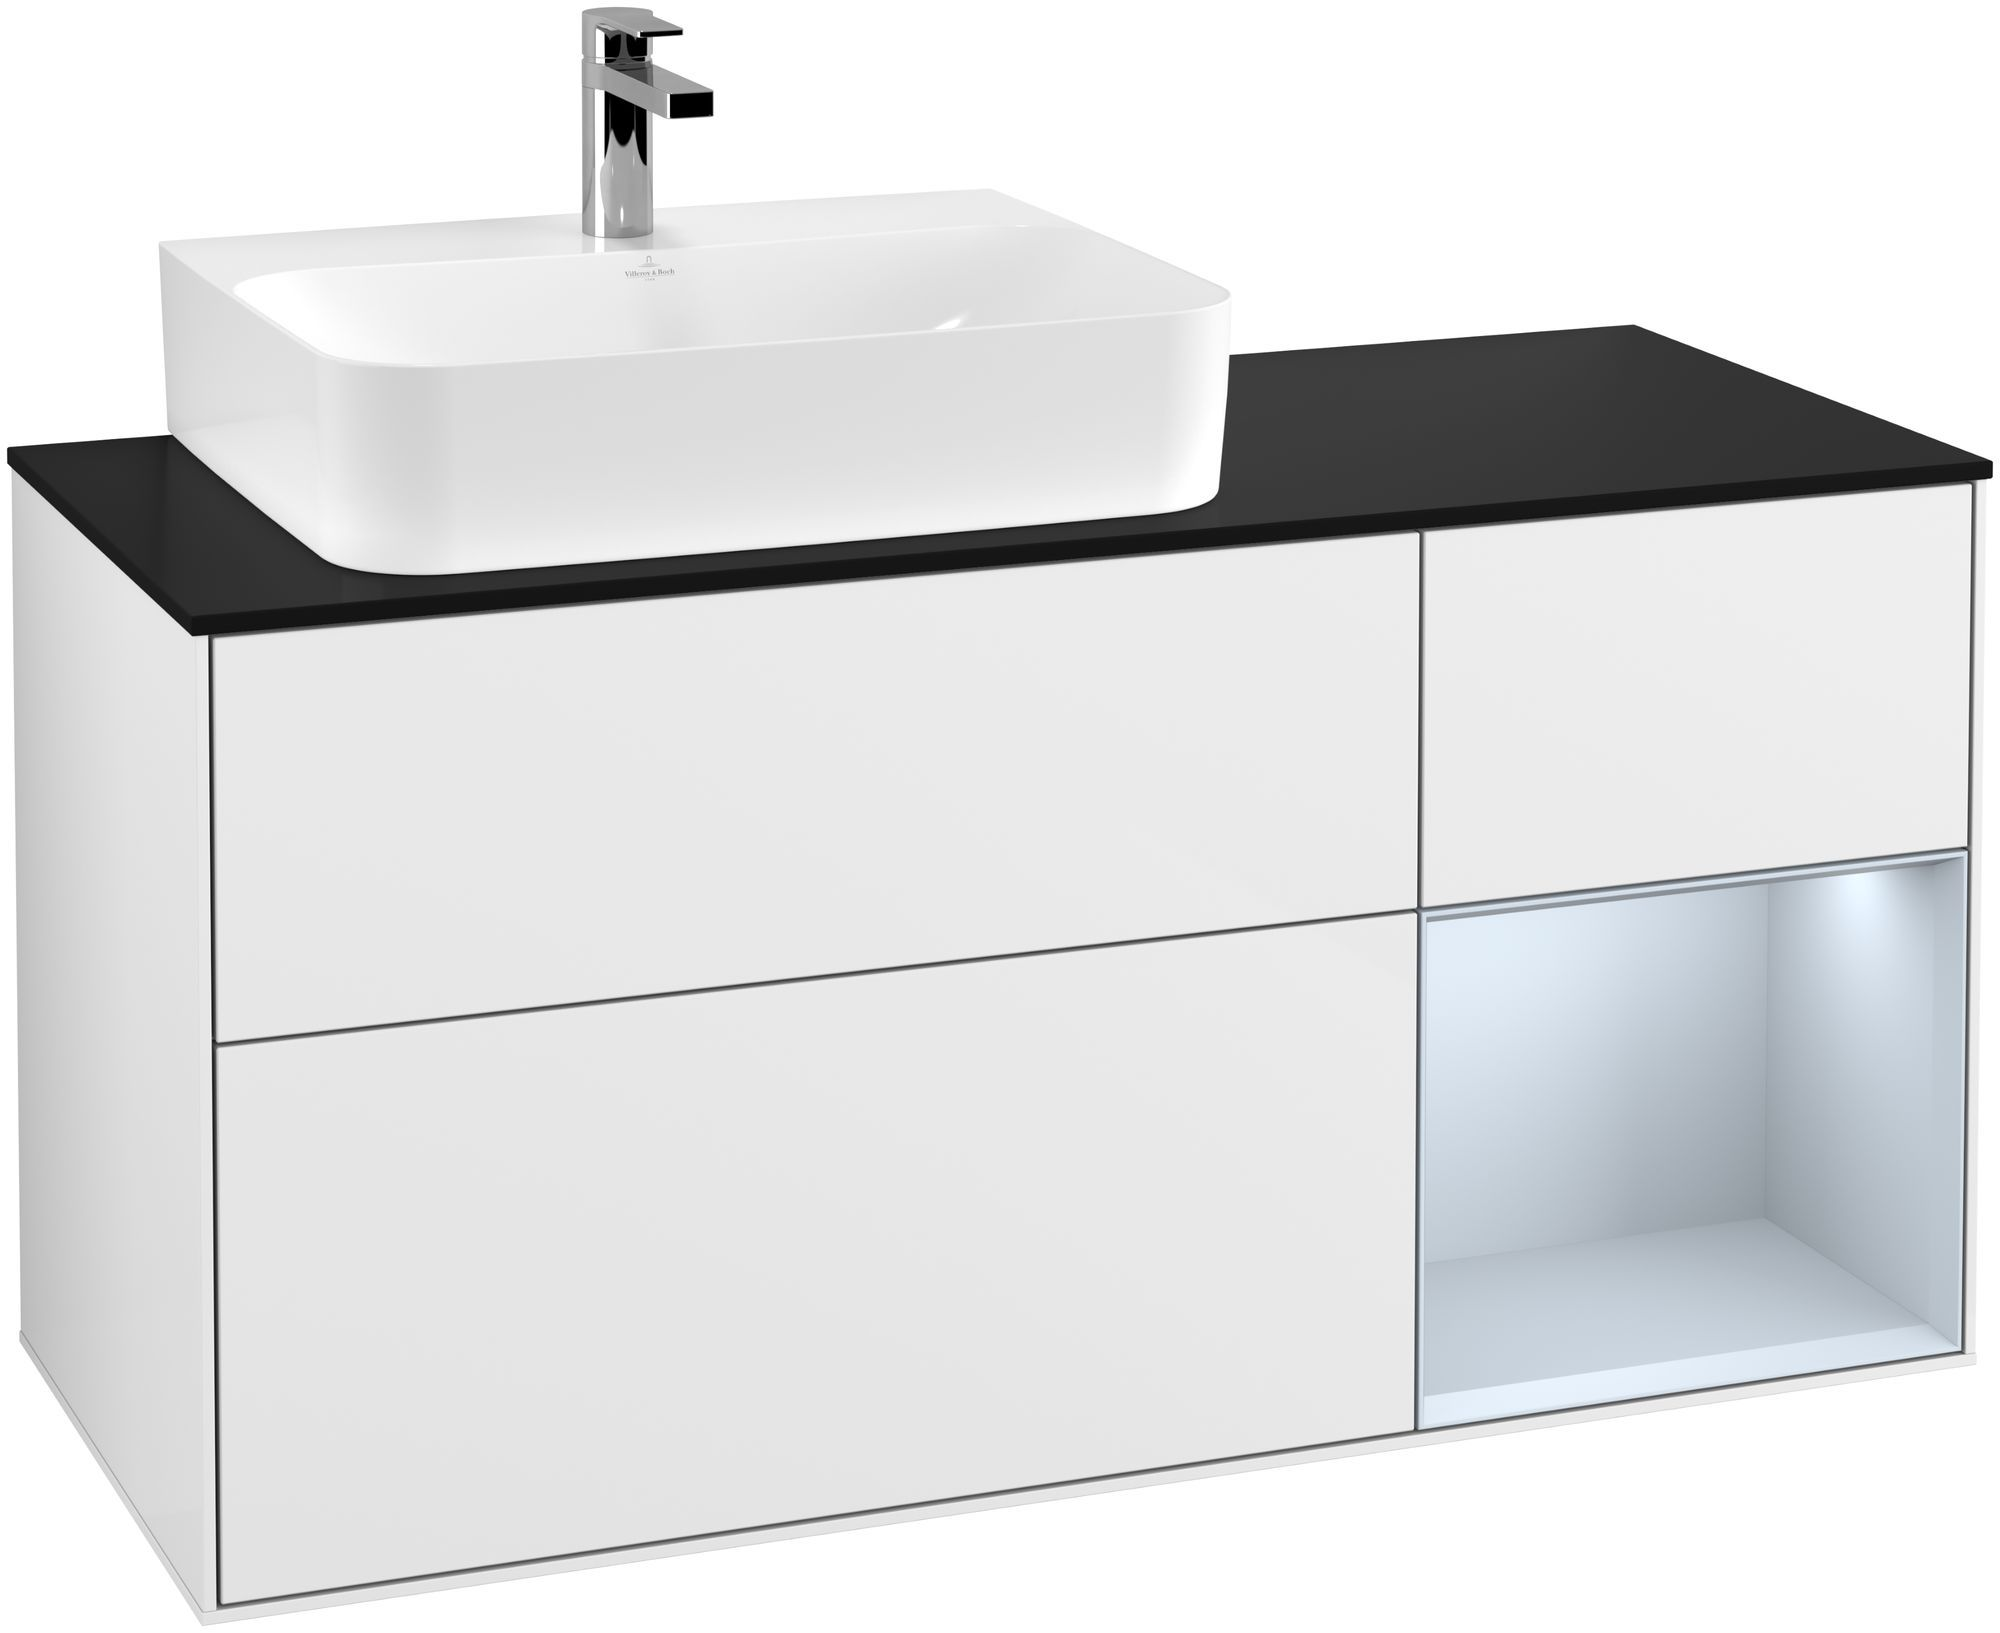 Villeroy & Boch Finion F15 Waschtischunterschrank mit Regalelement 3 Auszüge Waschtisch links LED-Beleuchtung B:120xH:60,3xT:50,1cm Front, Korpus: Glossy White Lack, Regal: Cloud, Glasplatte: Black Matt F152HAGF